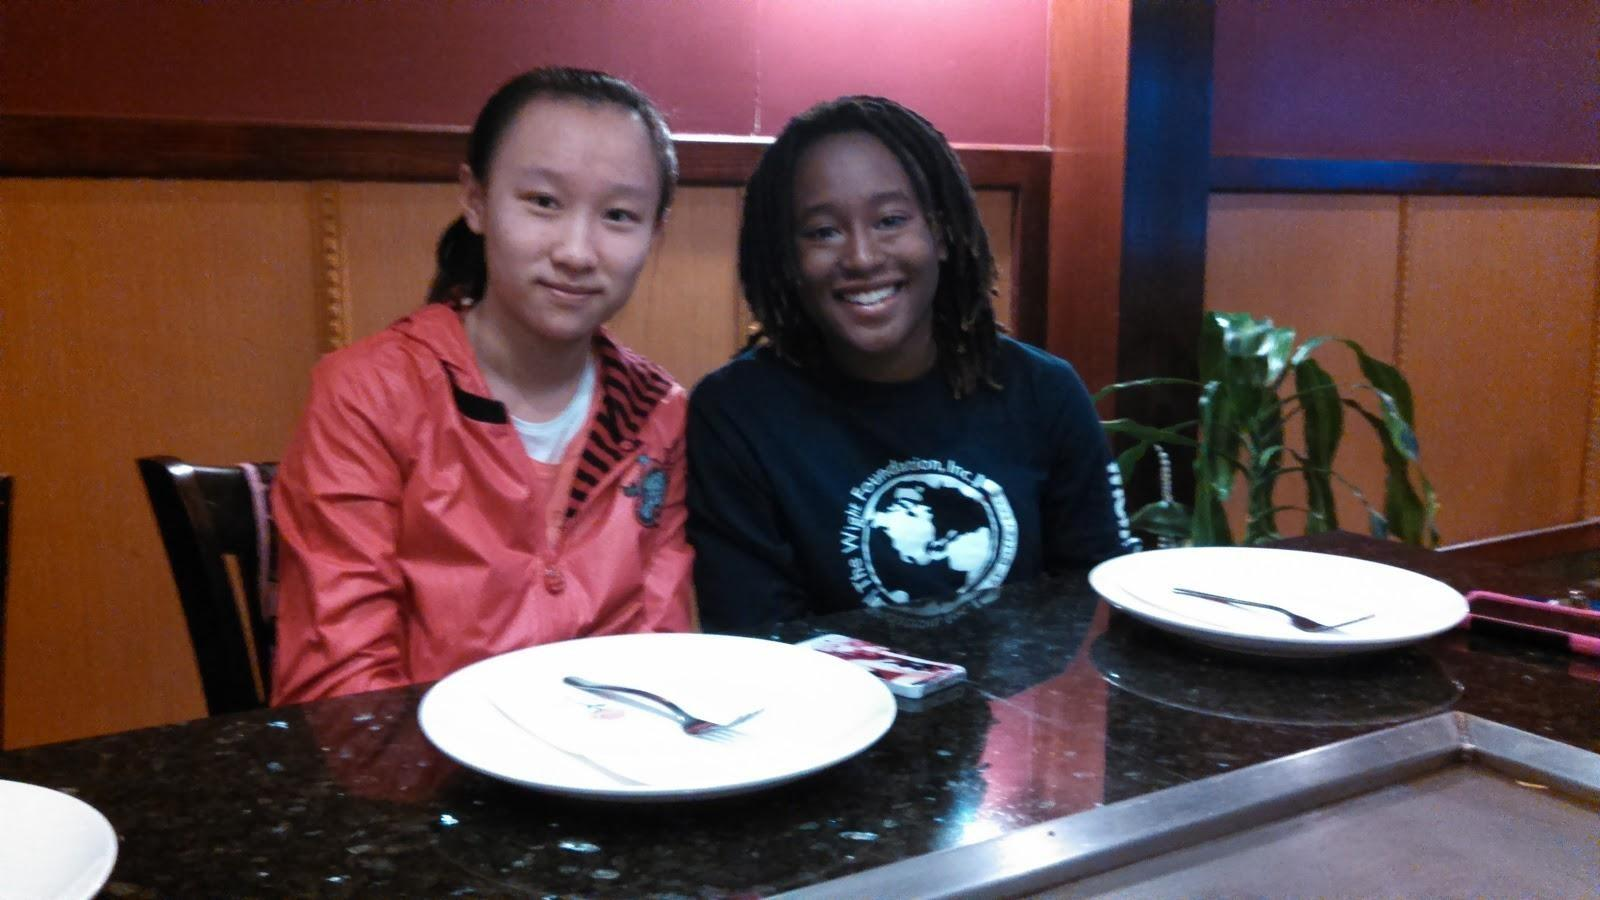 Amina Bright '15 with her EFZ partner Shen Yifan. Photographer: Yuan Gao